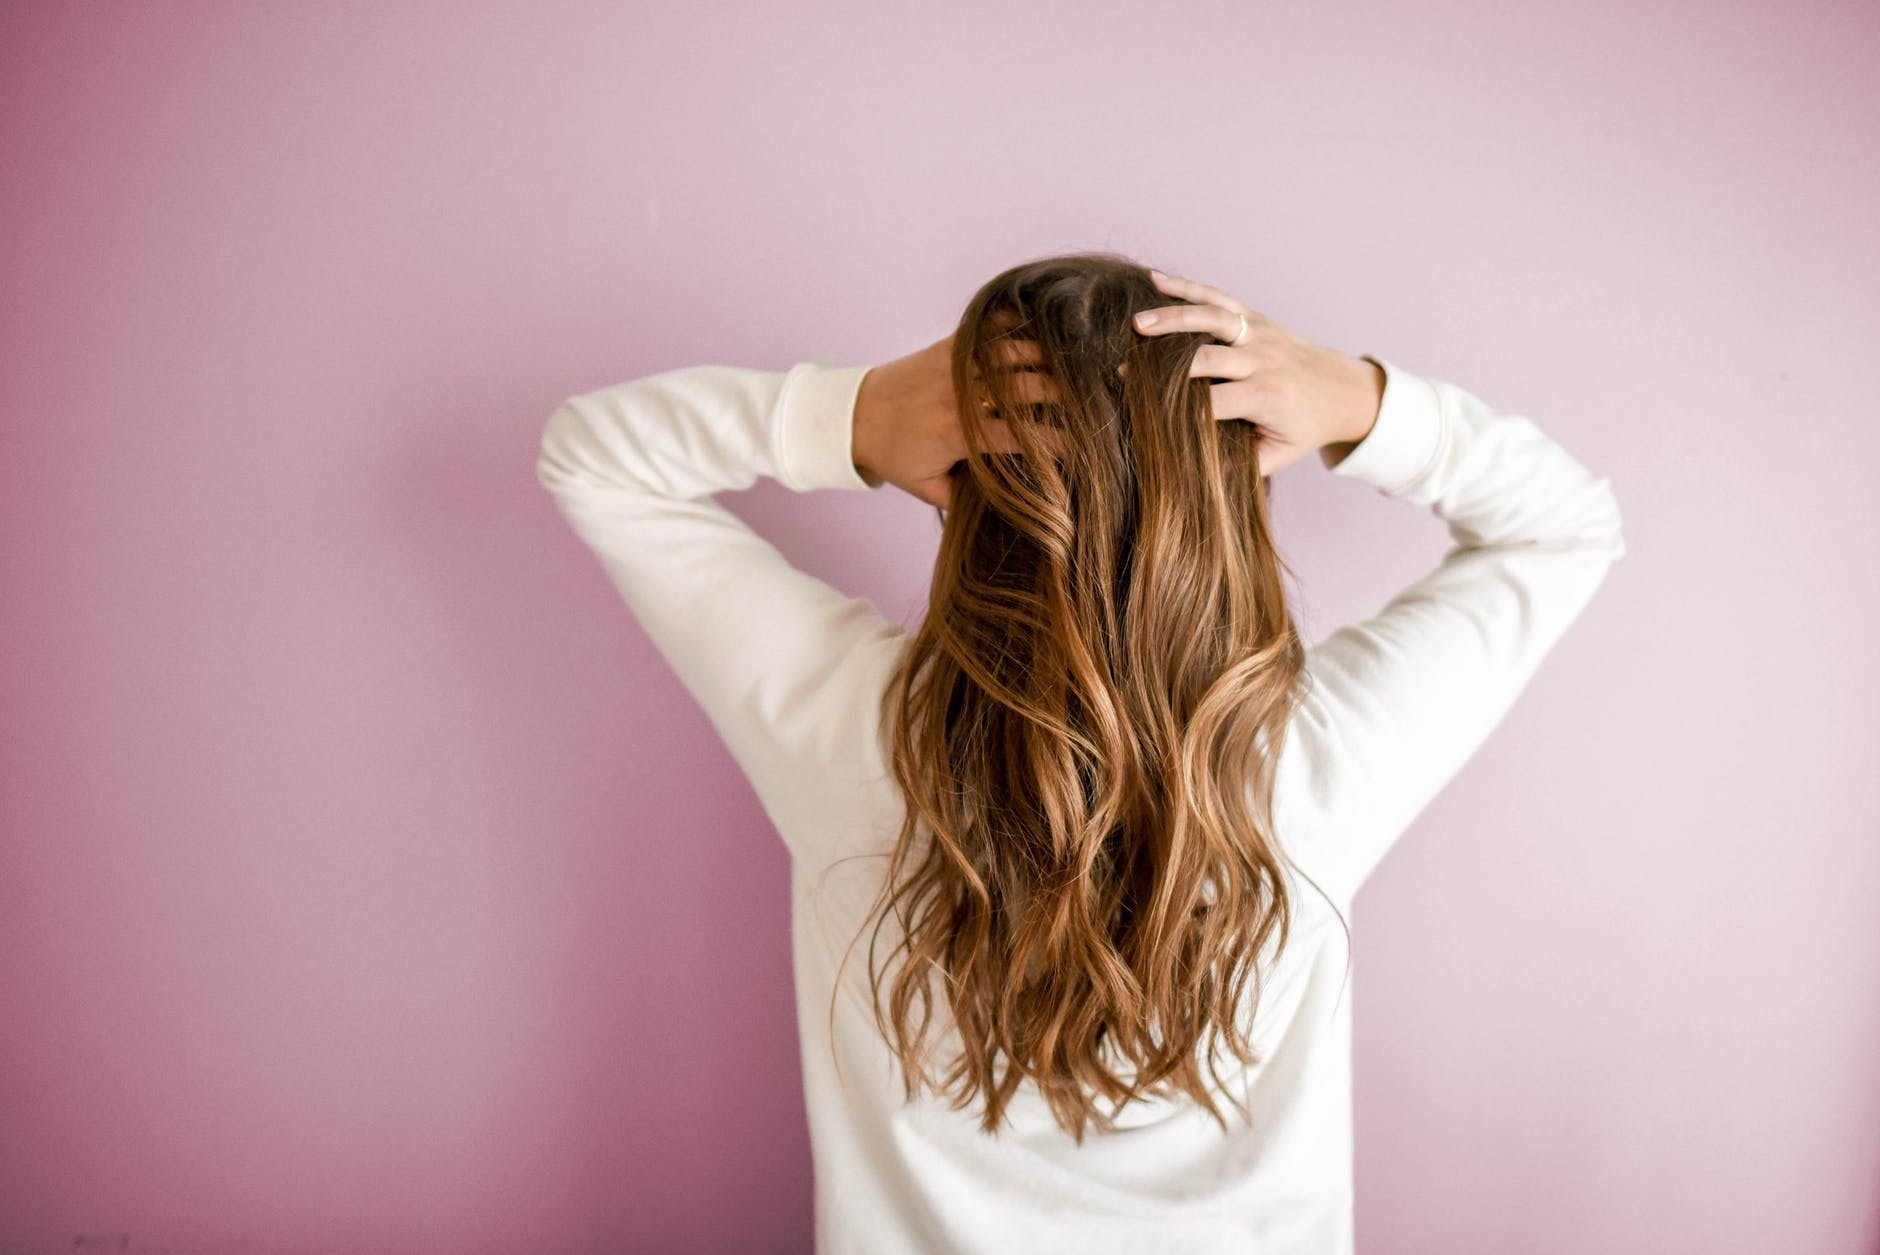 Hairstyles you should try before you die